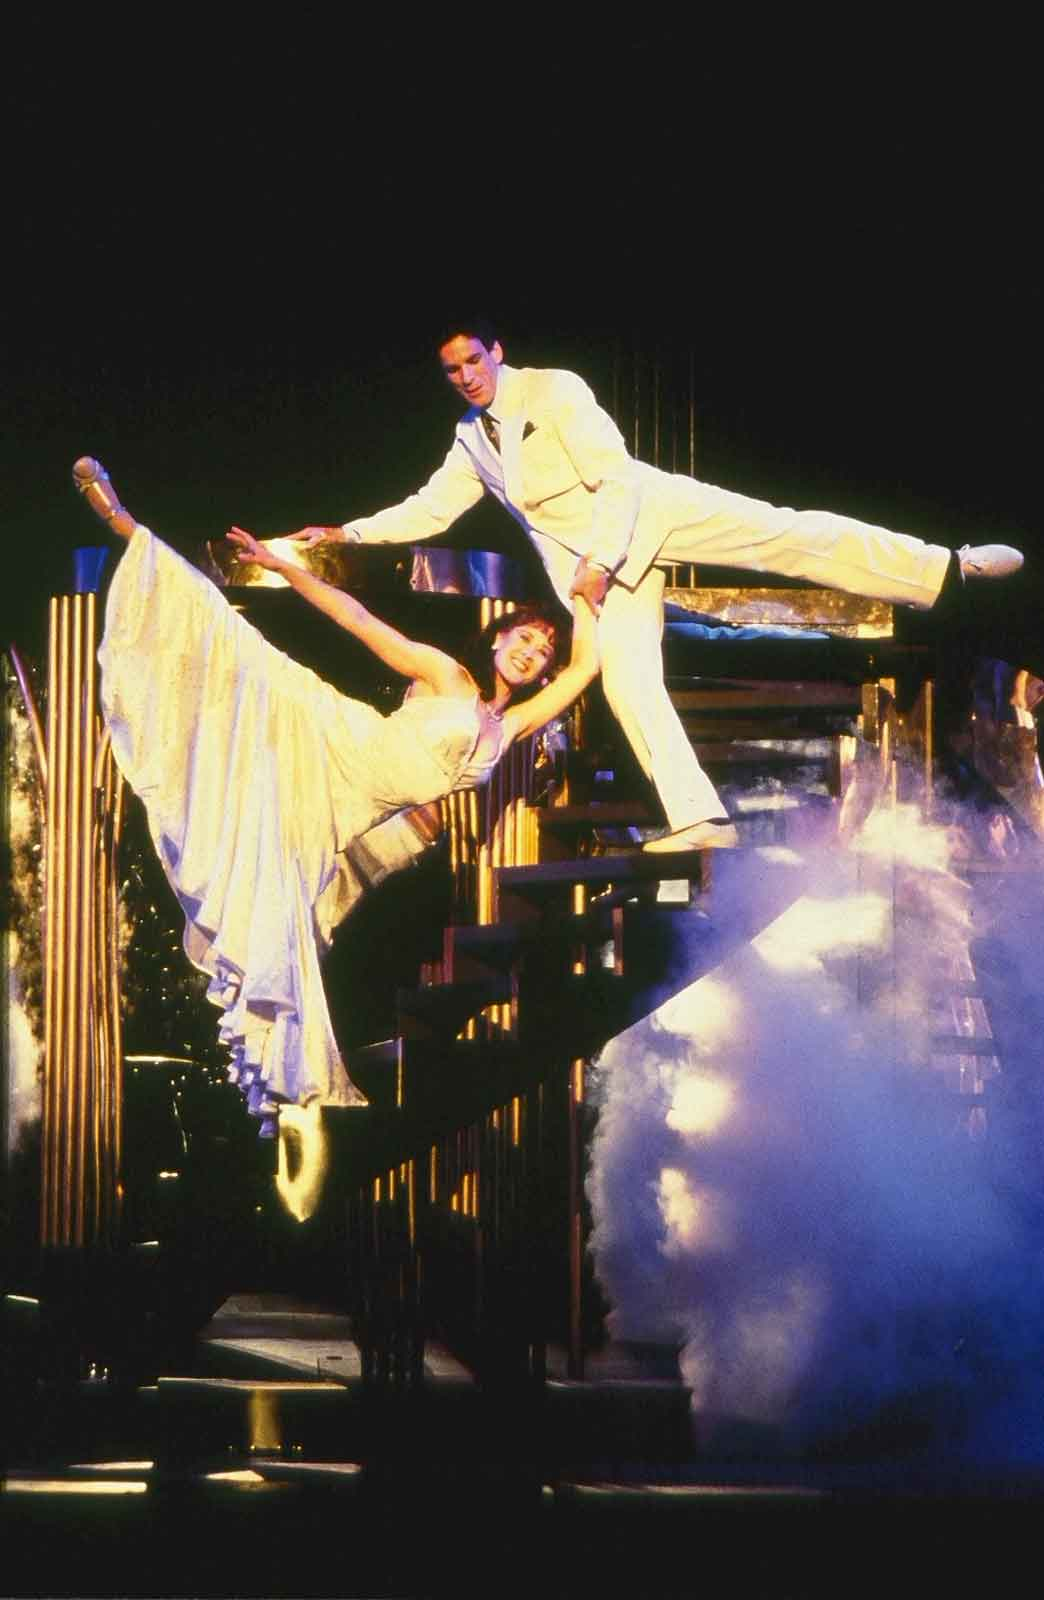 Karen Ziemba and Jimmy Brennan in the finale of Crazy for You. Both dancing on a staircase, in elegant white costumes, and with a leg behind them in arabesque.